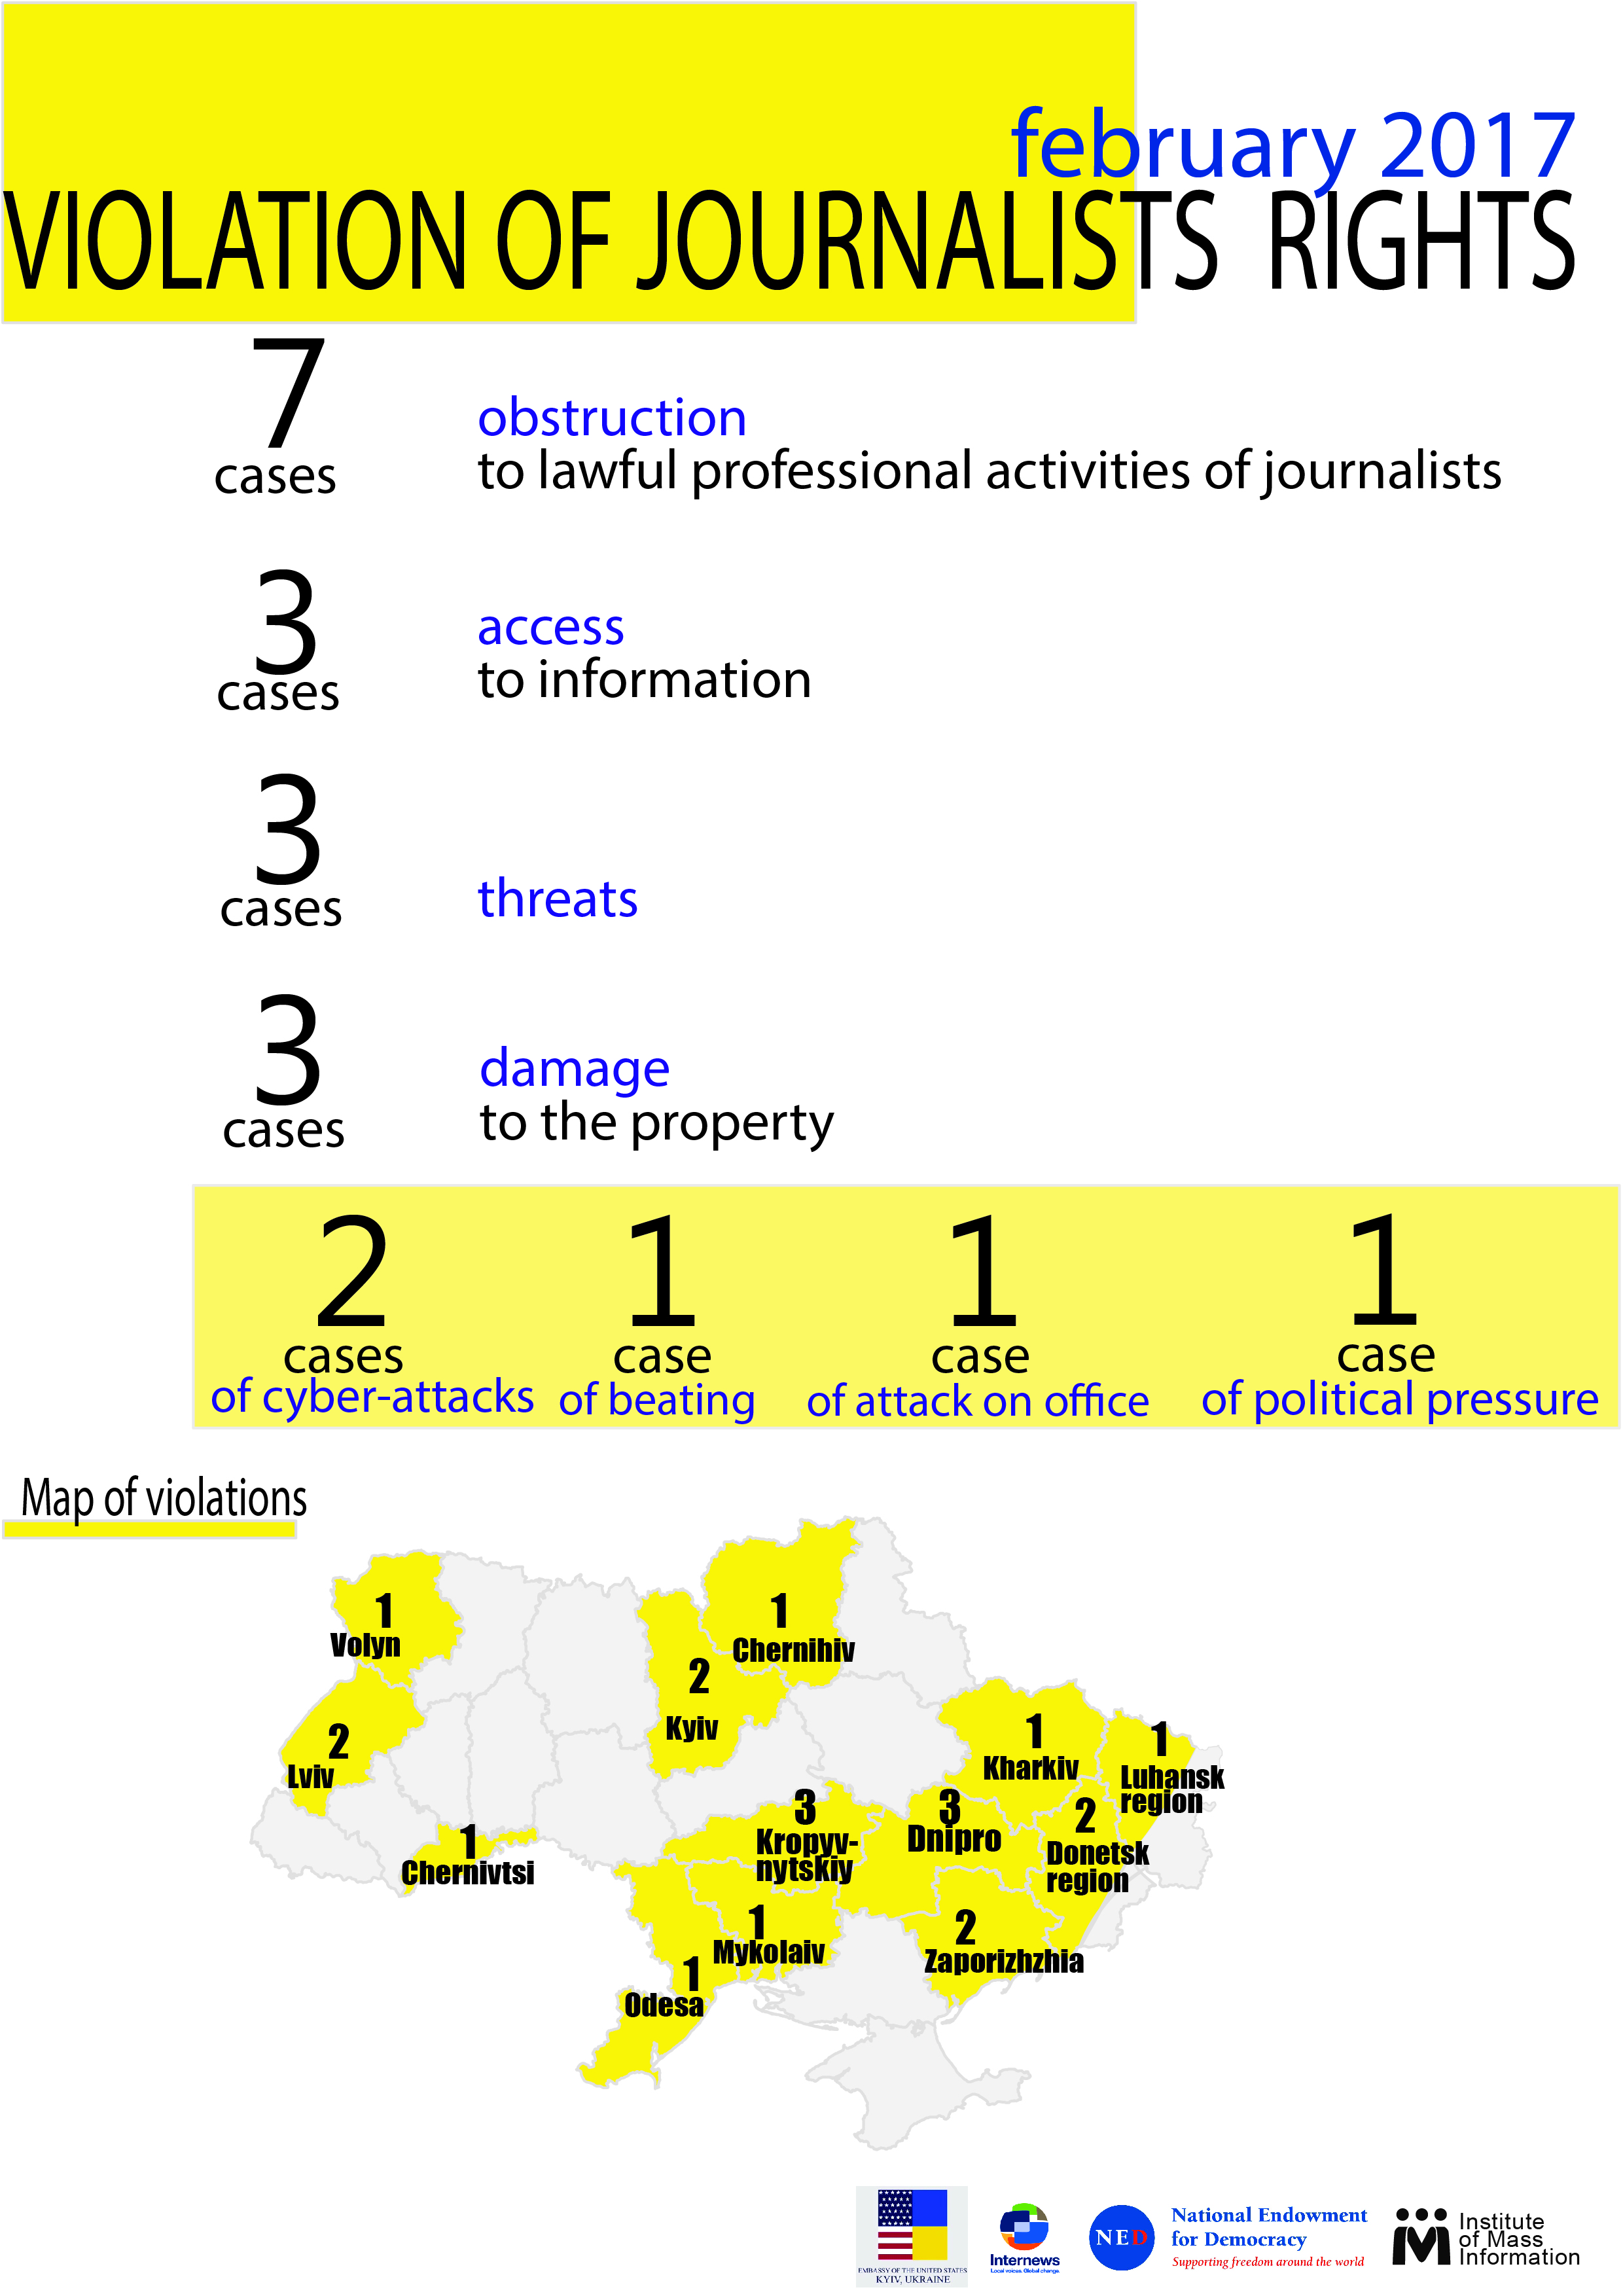 Local government - Donetsk region: a selection of sites